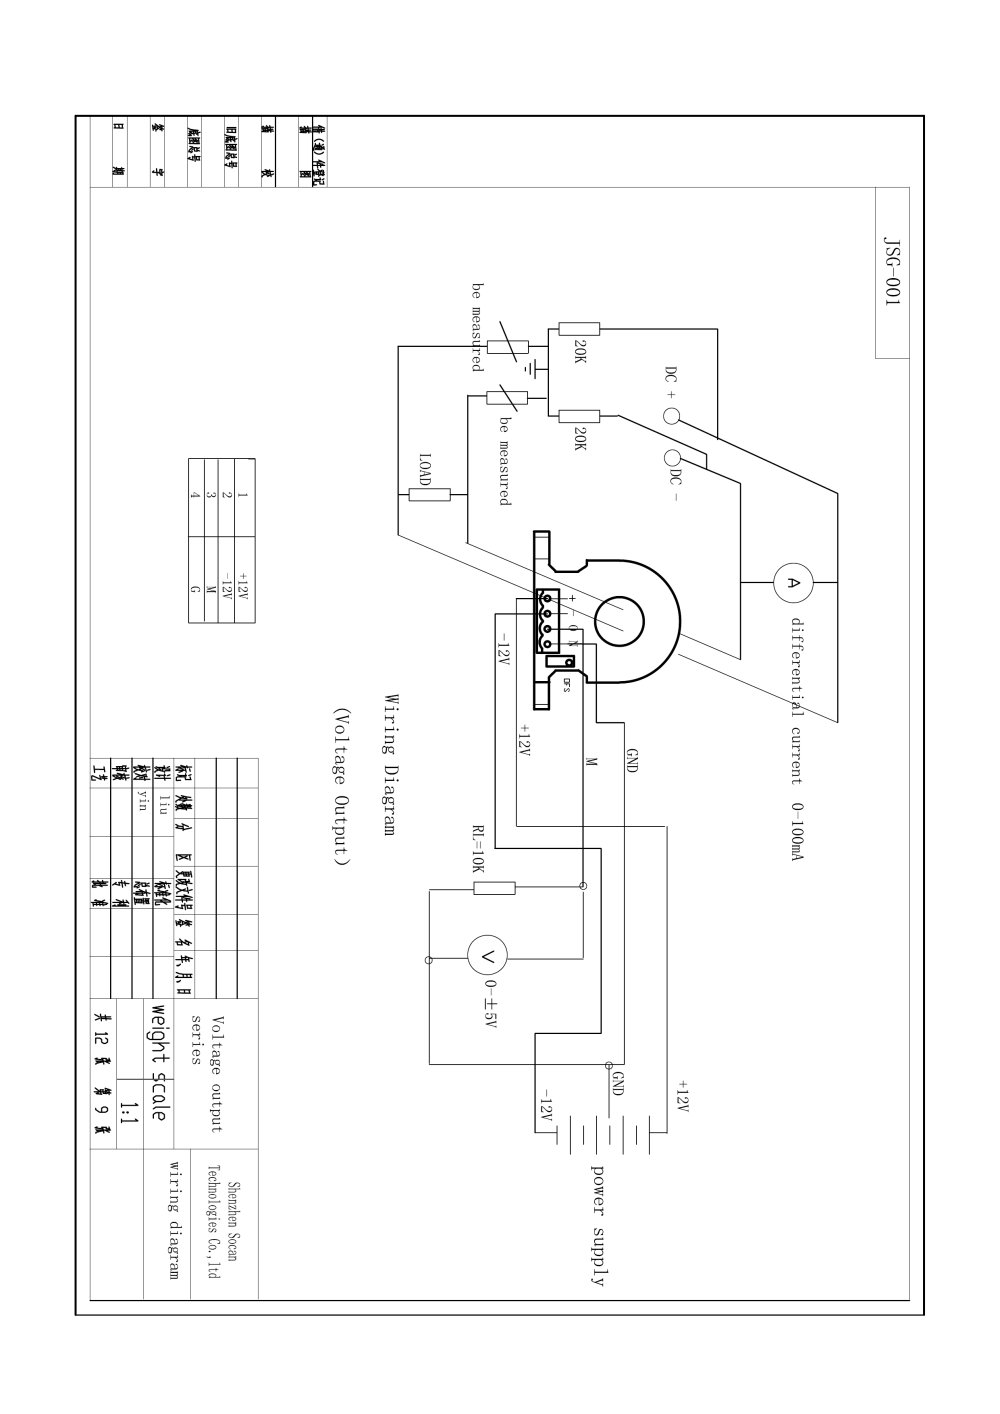 hight resolution of direct current wiring diagrams simple wiring schema wind turbine wiring dc leakage current sensor scd series